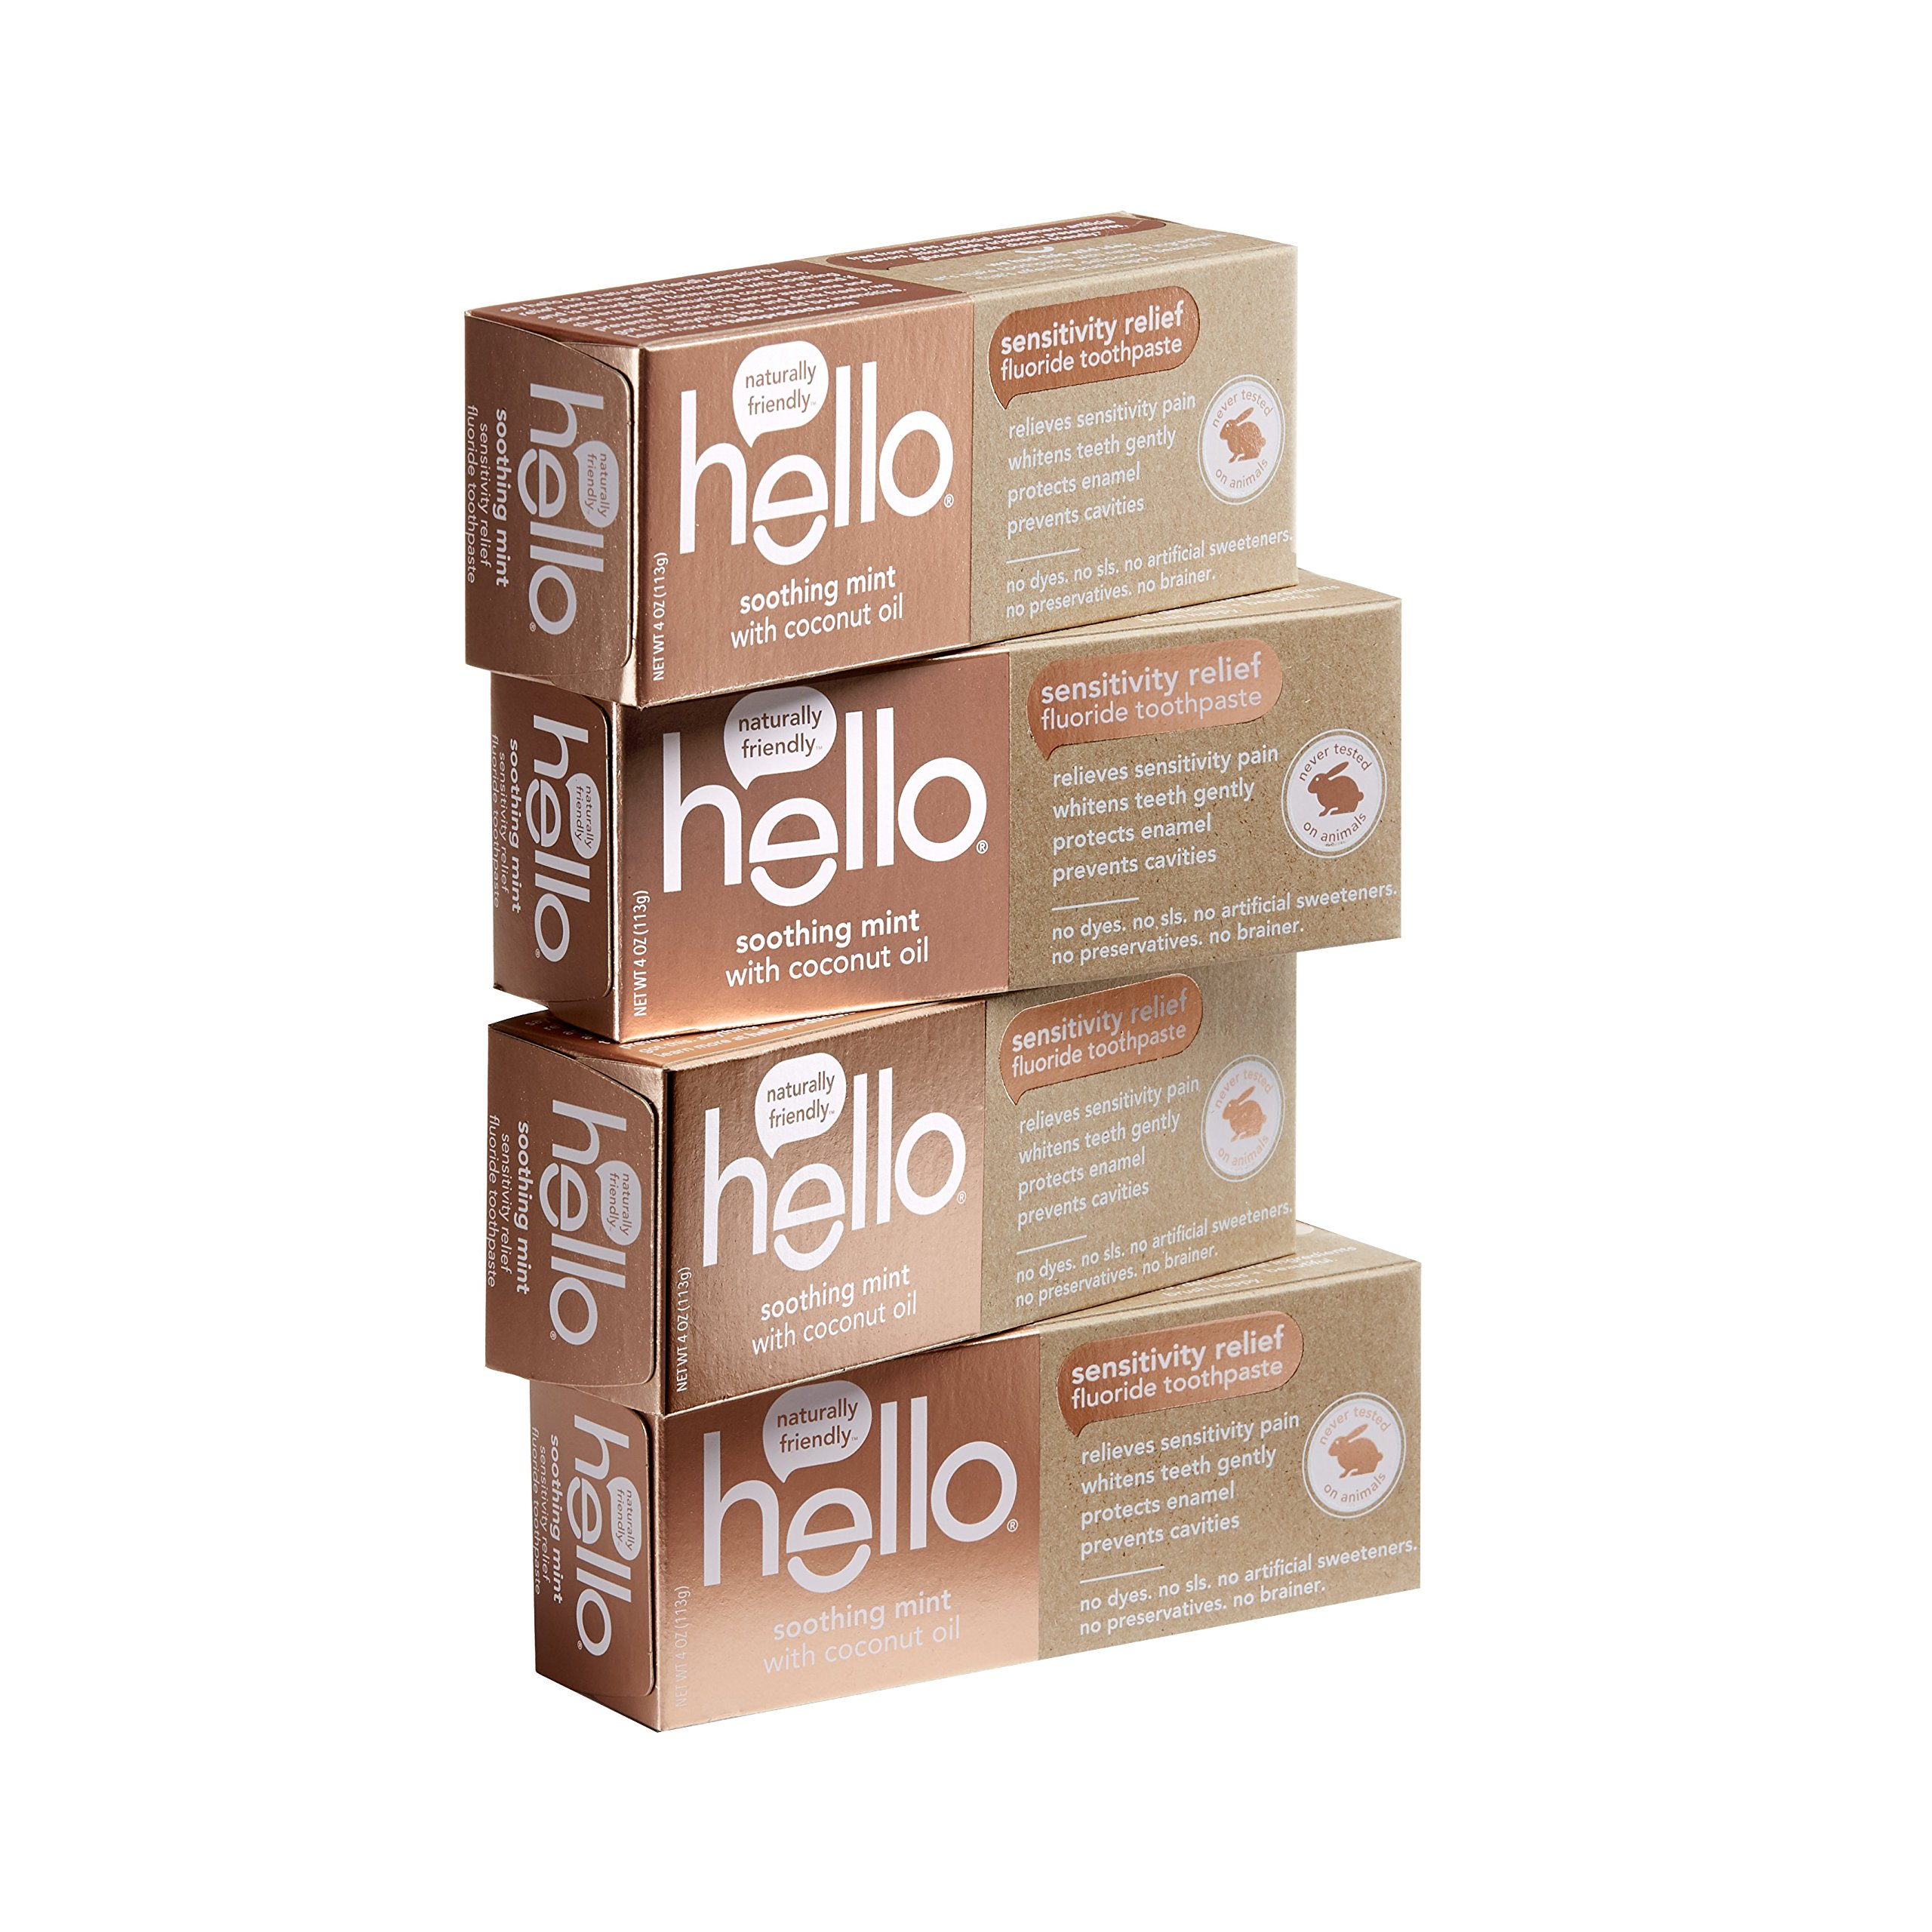 Hello Oral Care Sensitivity Relief Fluoride Toothpaste with No Artificial Sweeteners, SLS Free, Soothing Mint with Coconut Oil, 4 Count by Hello Oral Care